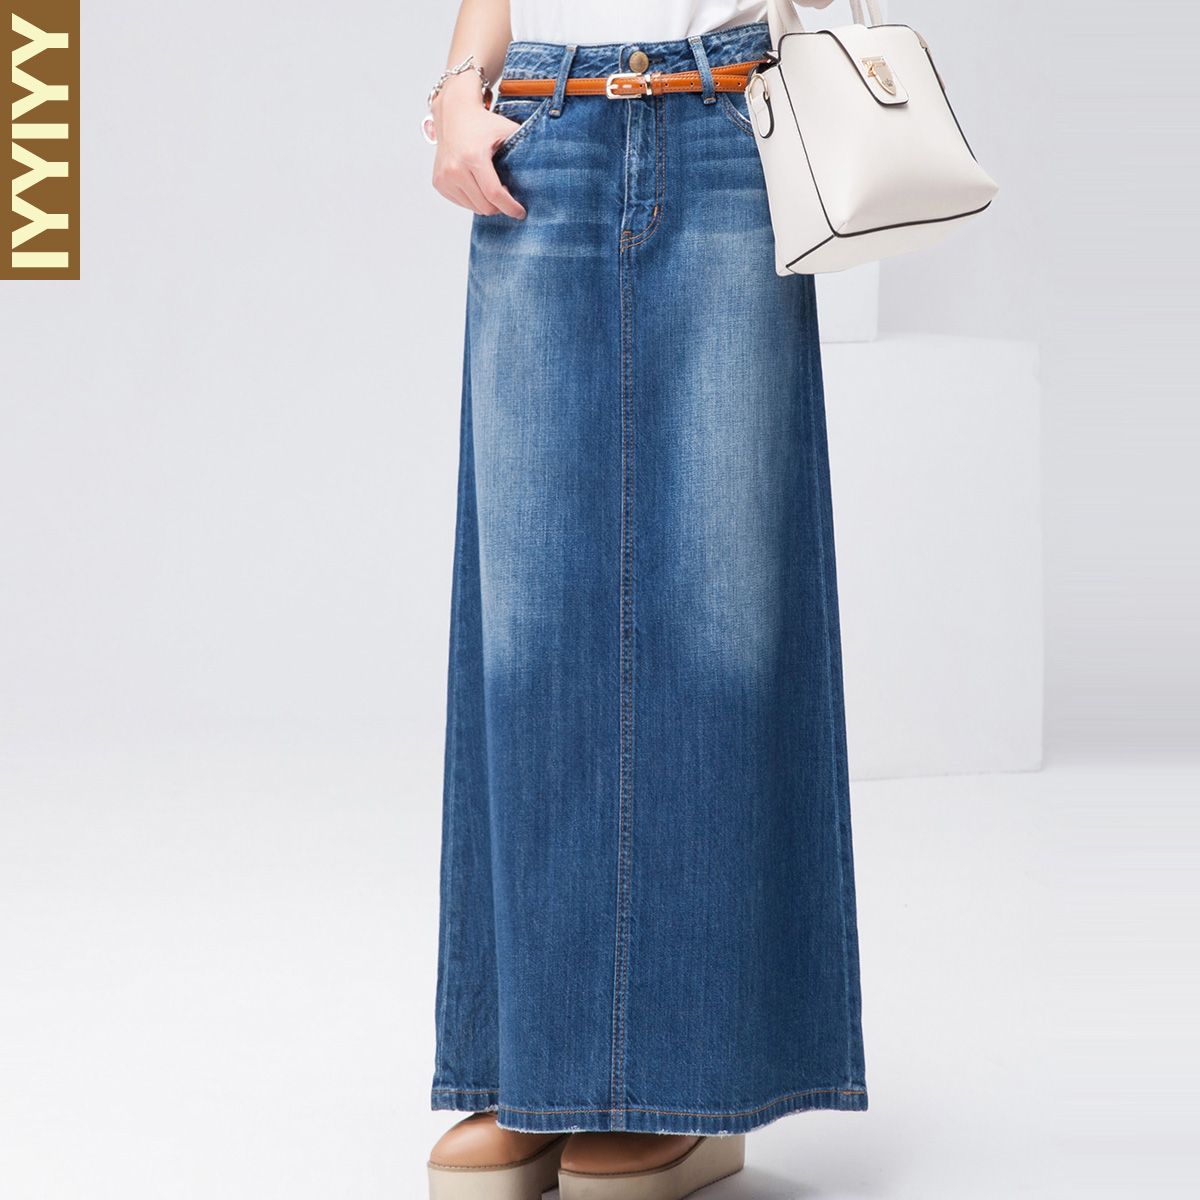 Their long length is typically a inch inseam, though lengths can vary depending on the style. Shipping is free when you spend over $ Lands' End stocks tall women's jeans in inch inseams.